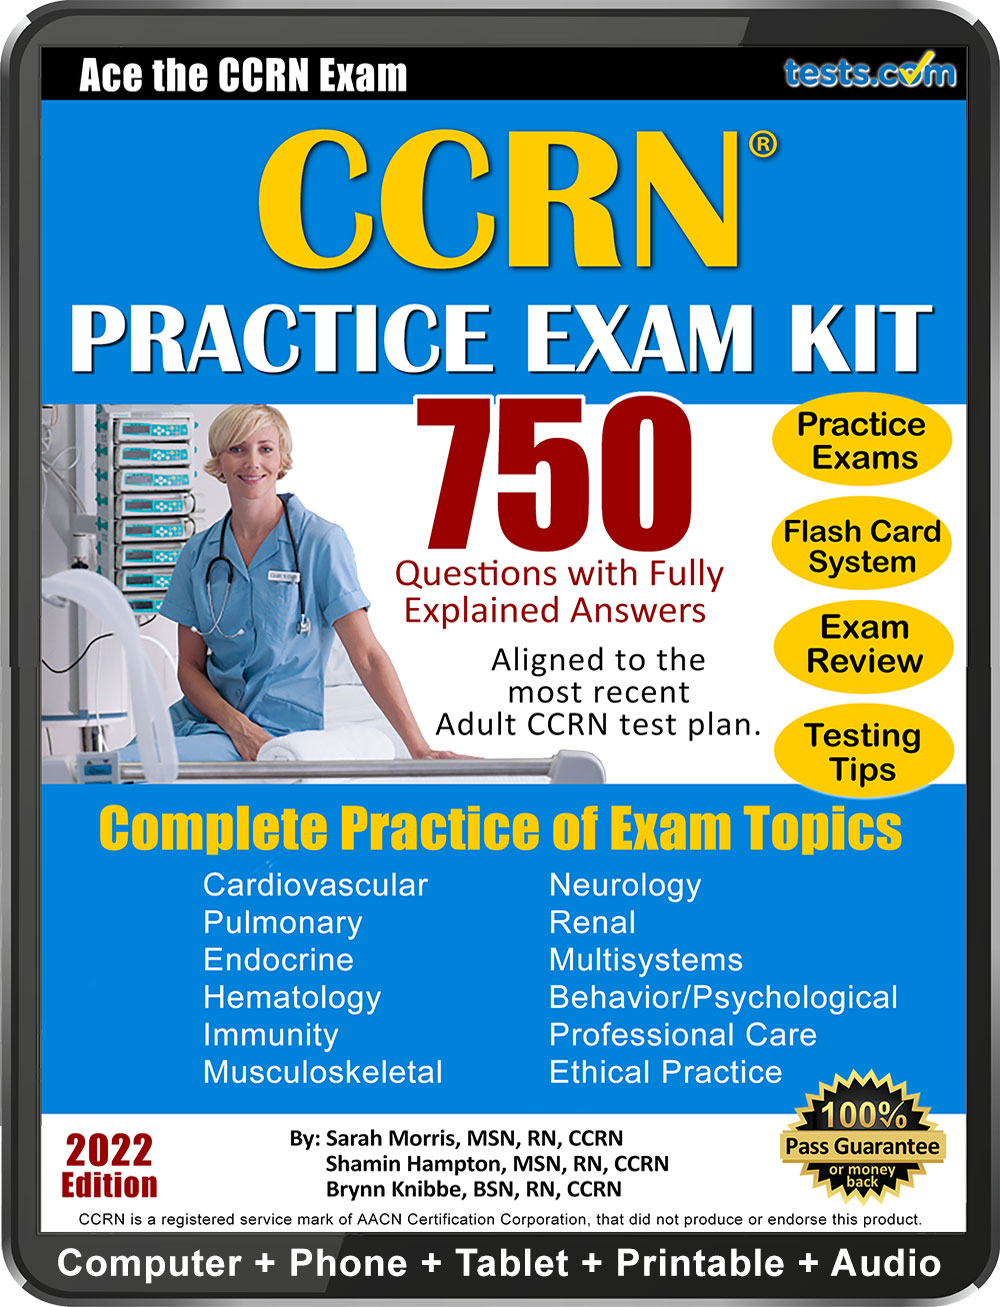 CCRN Practice Test, CCRN Practice Exam Questions